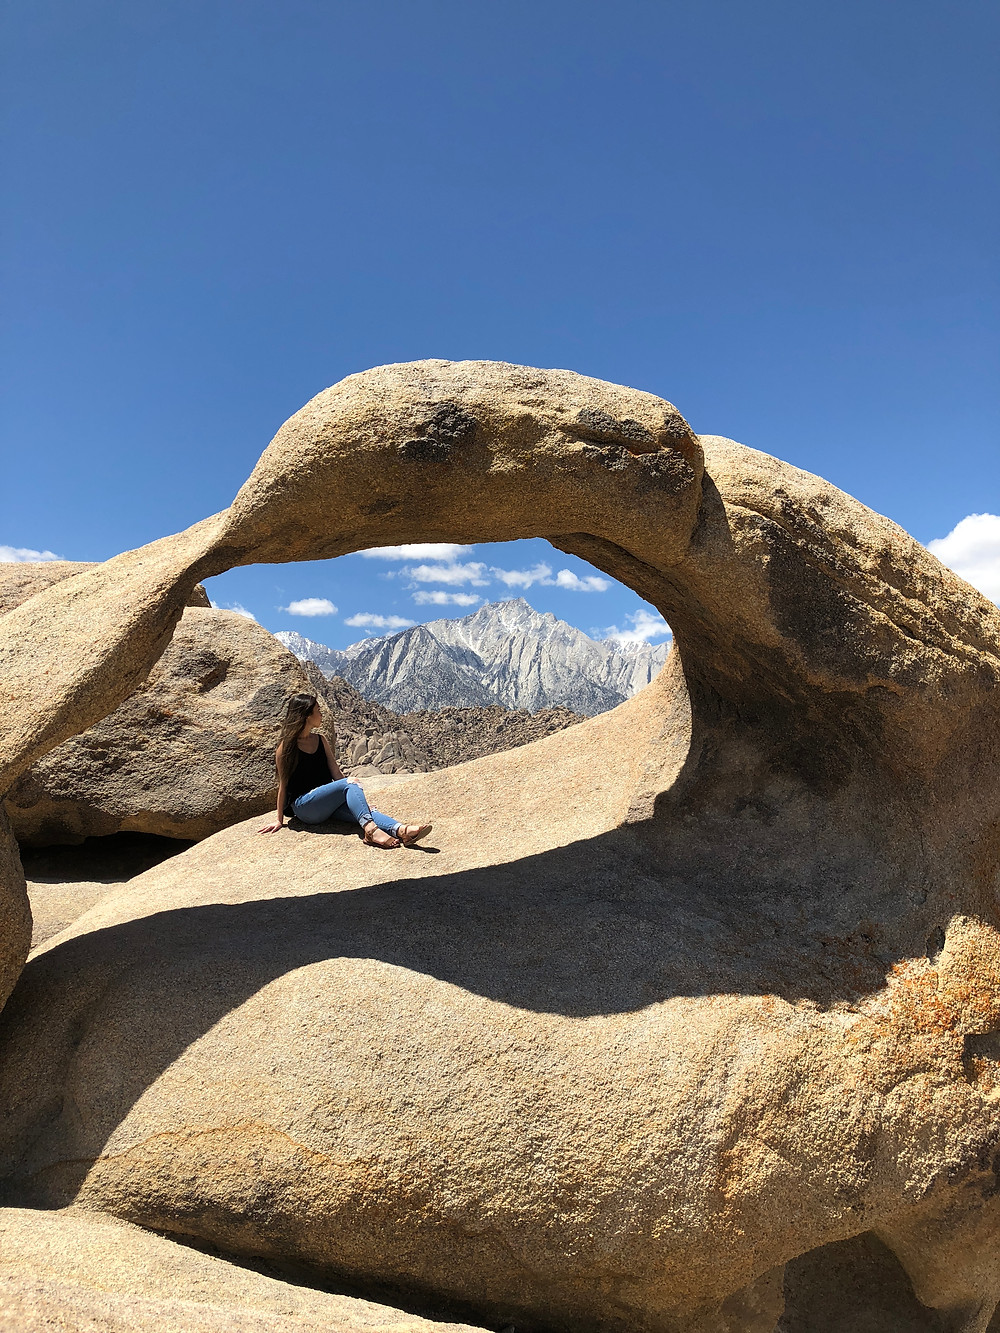 Mobius Arch at Alabama Hills in Lone Pine